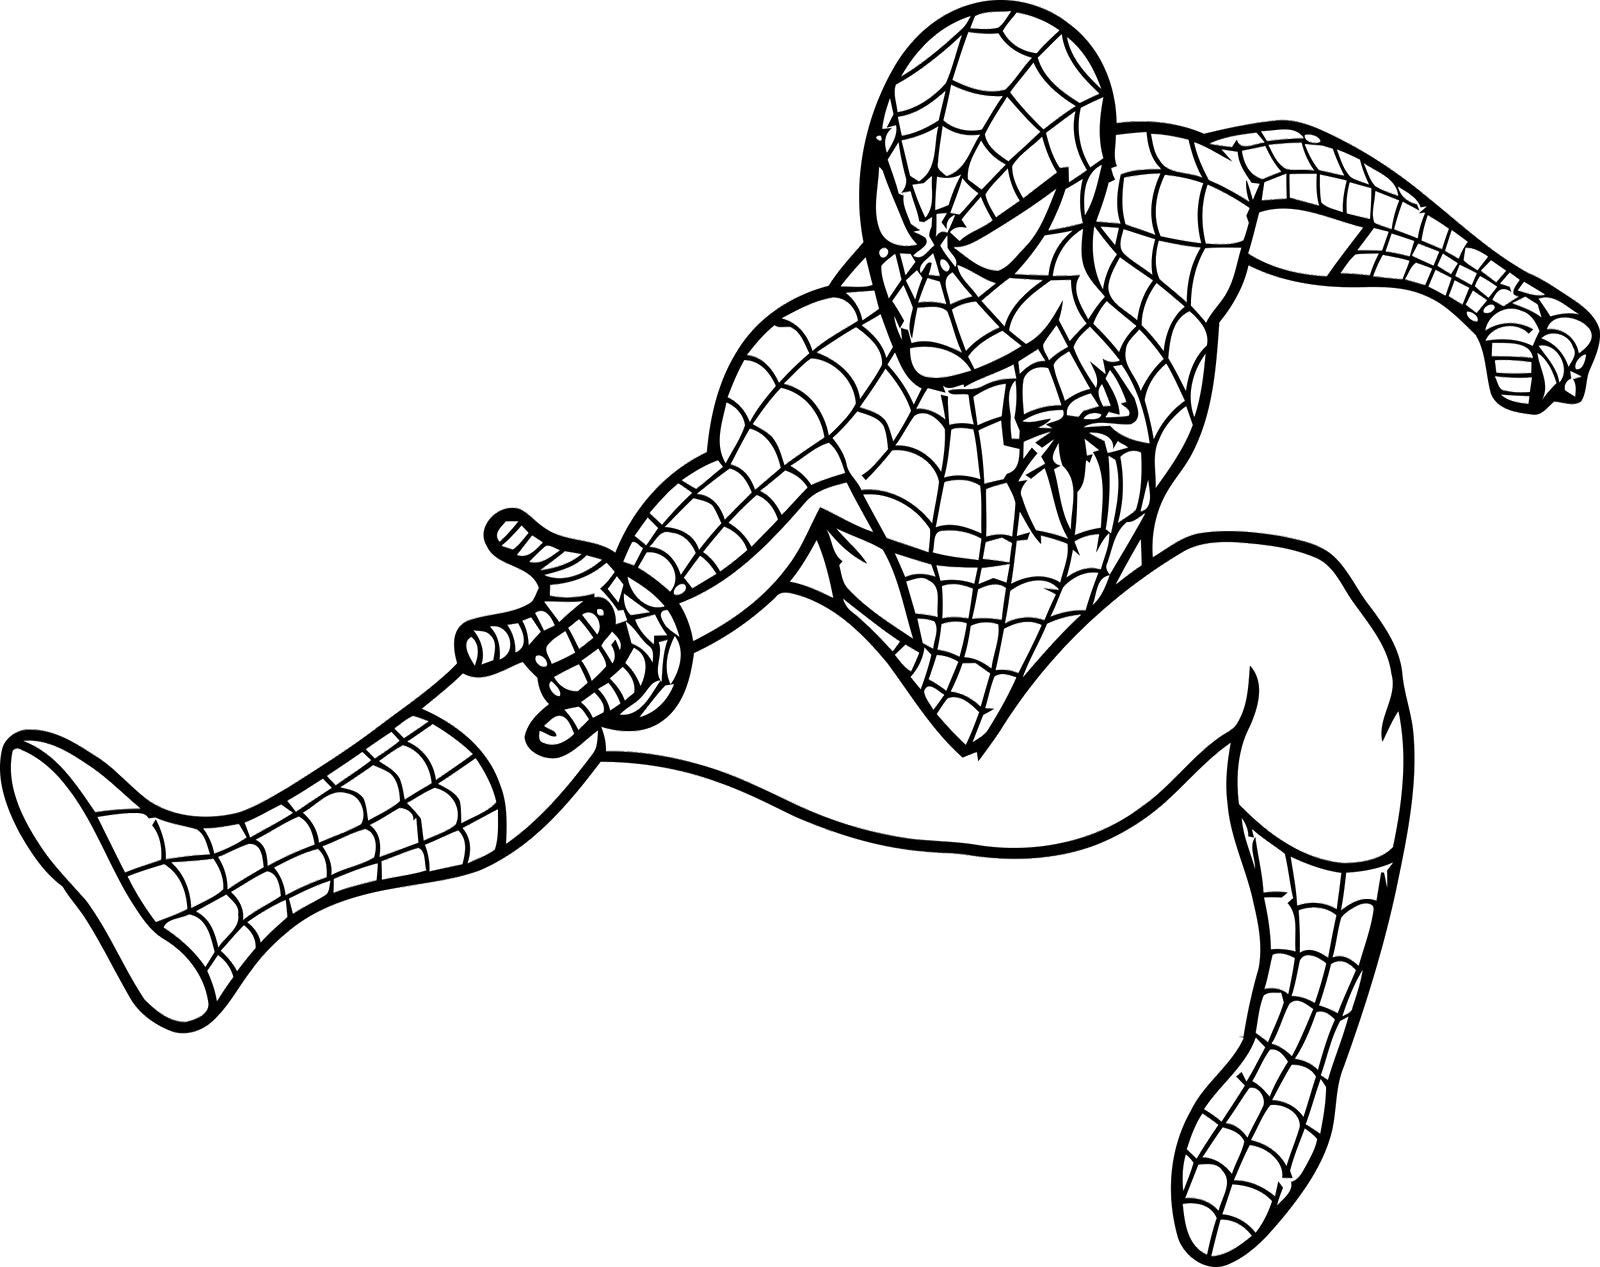 Free Spiderman Coloring Pages Superhero Coloring Pages Turtle Coloring Pages Spiderman Coloring